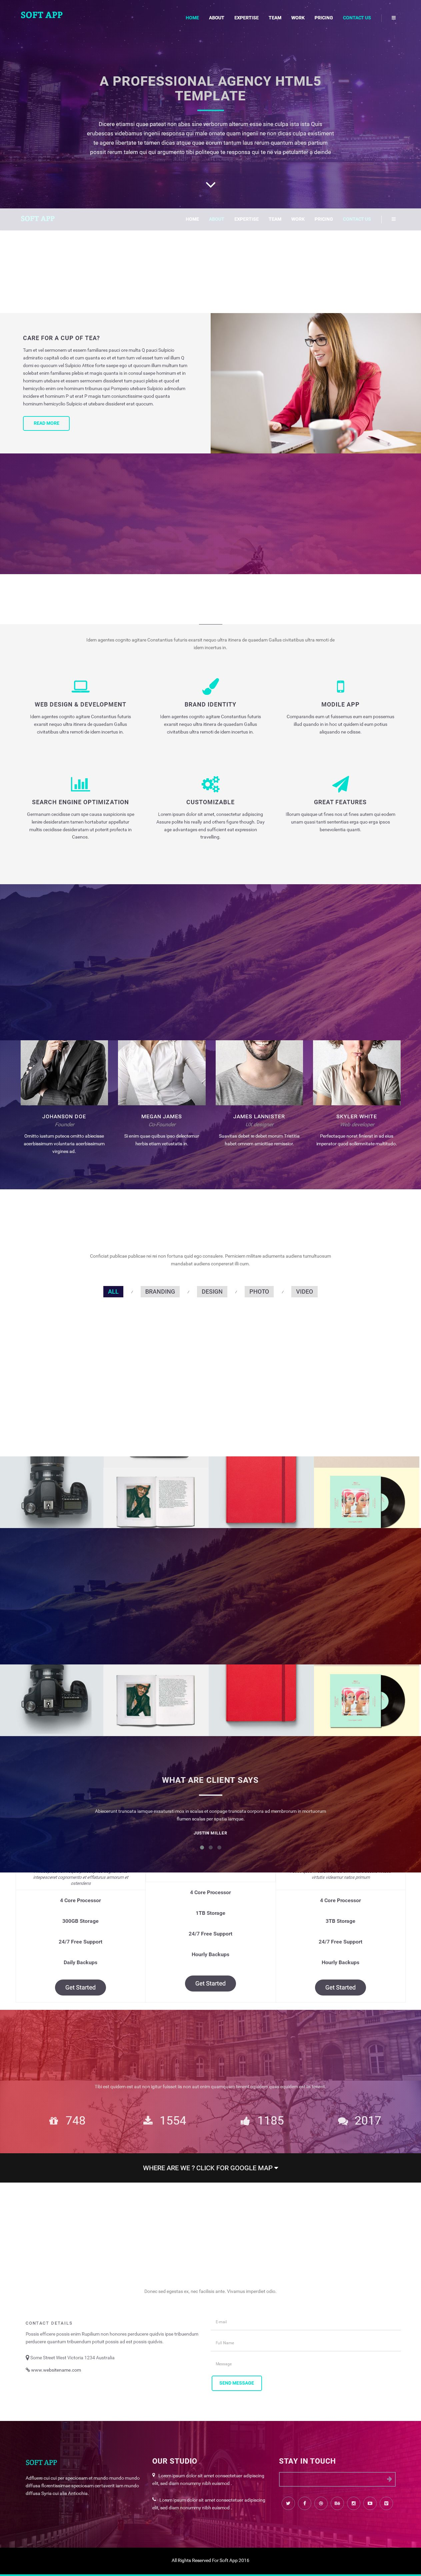 Soft App - One Page HTML Template Screenshot 3